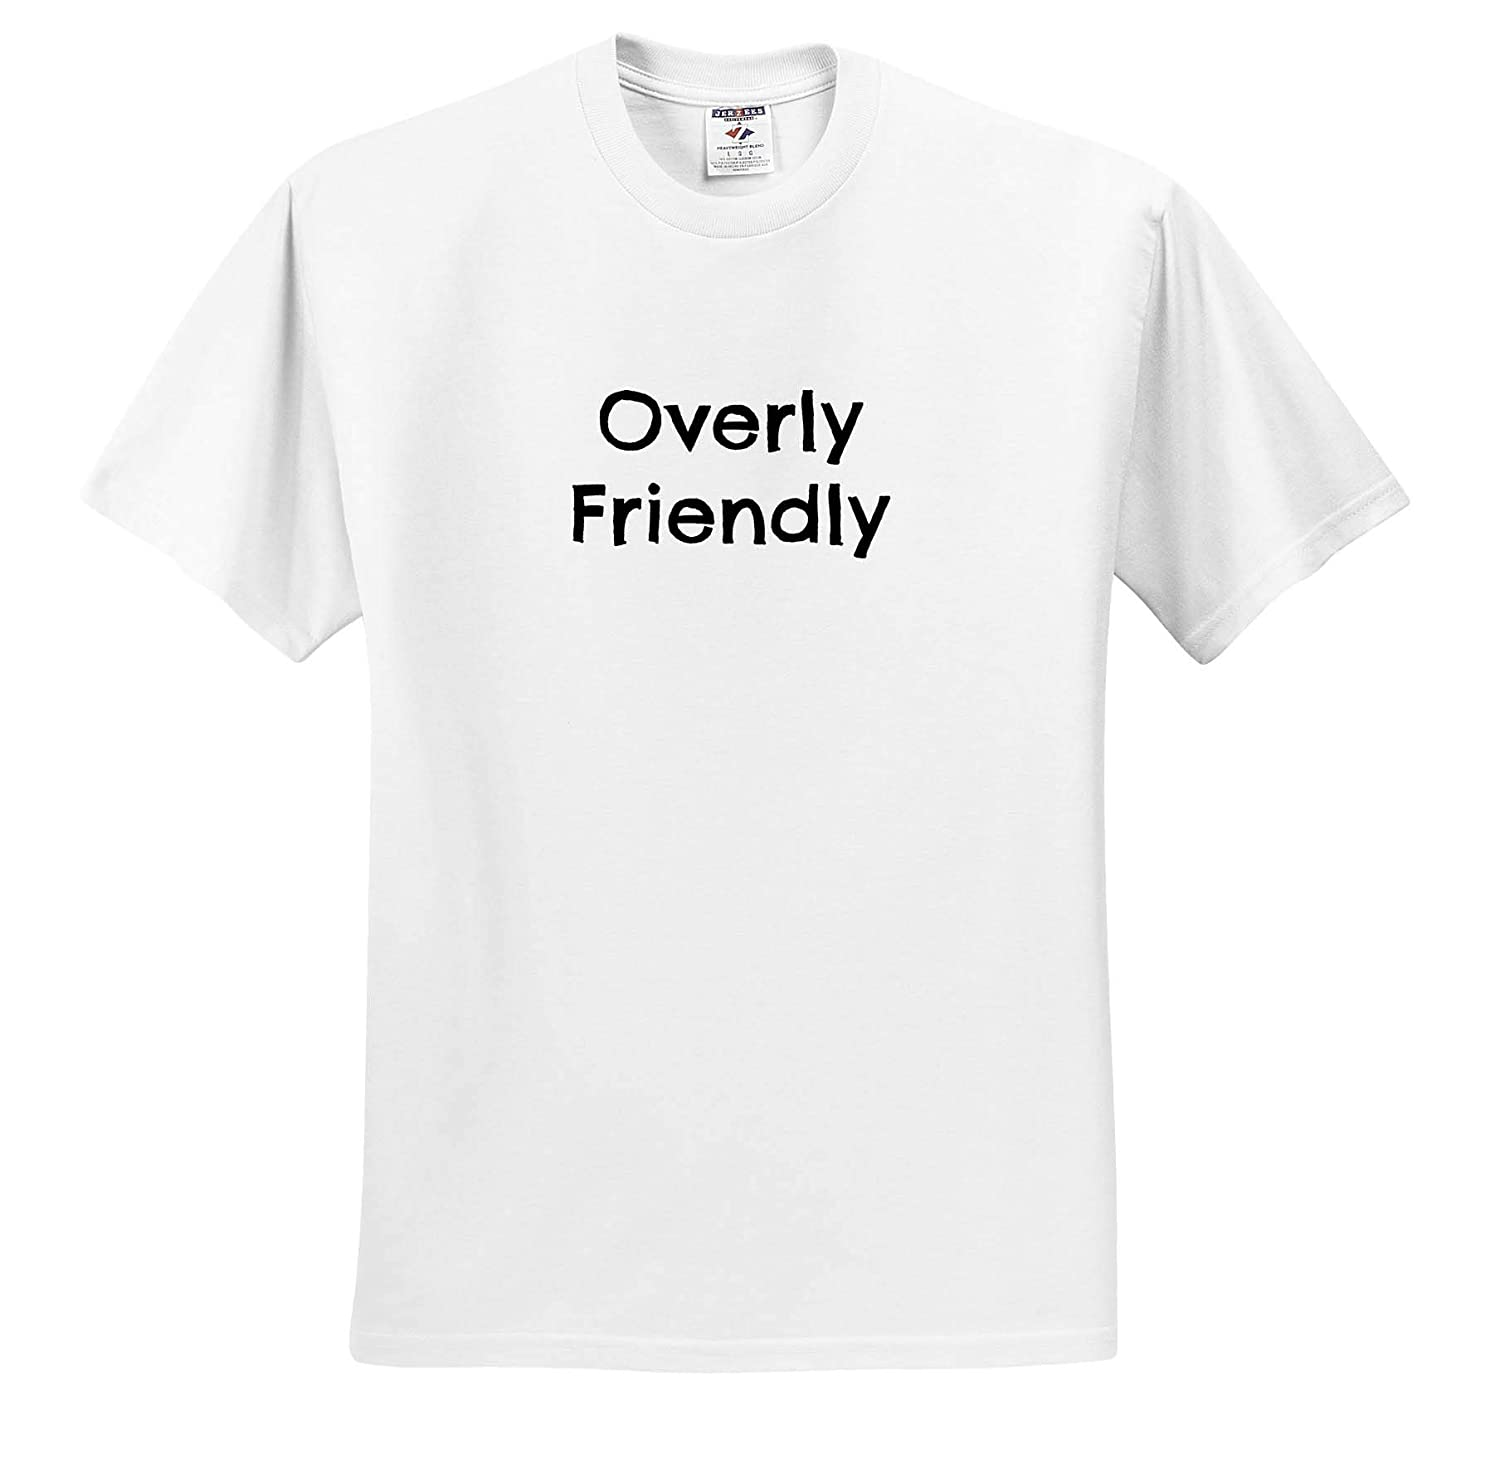 Image of Quote Overly Friendly 3dRose Carrie Quote Image Adult T-Shirt XL ts/_320214